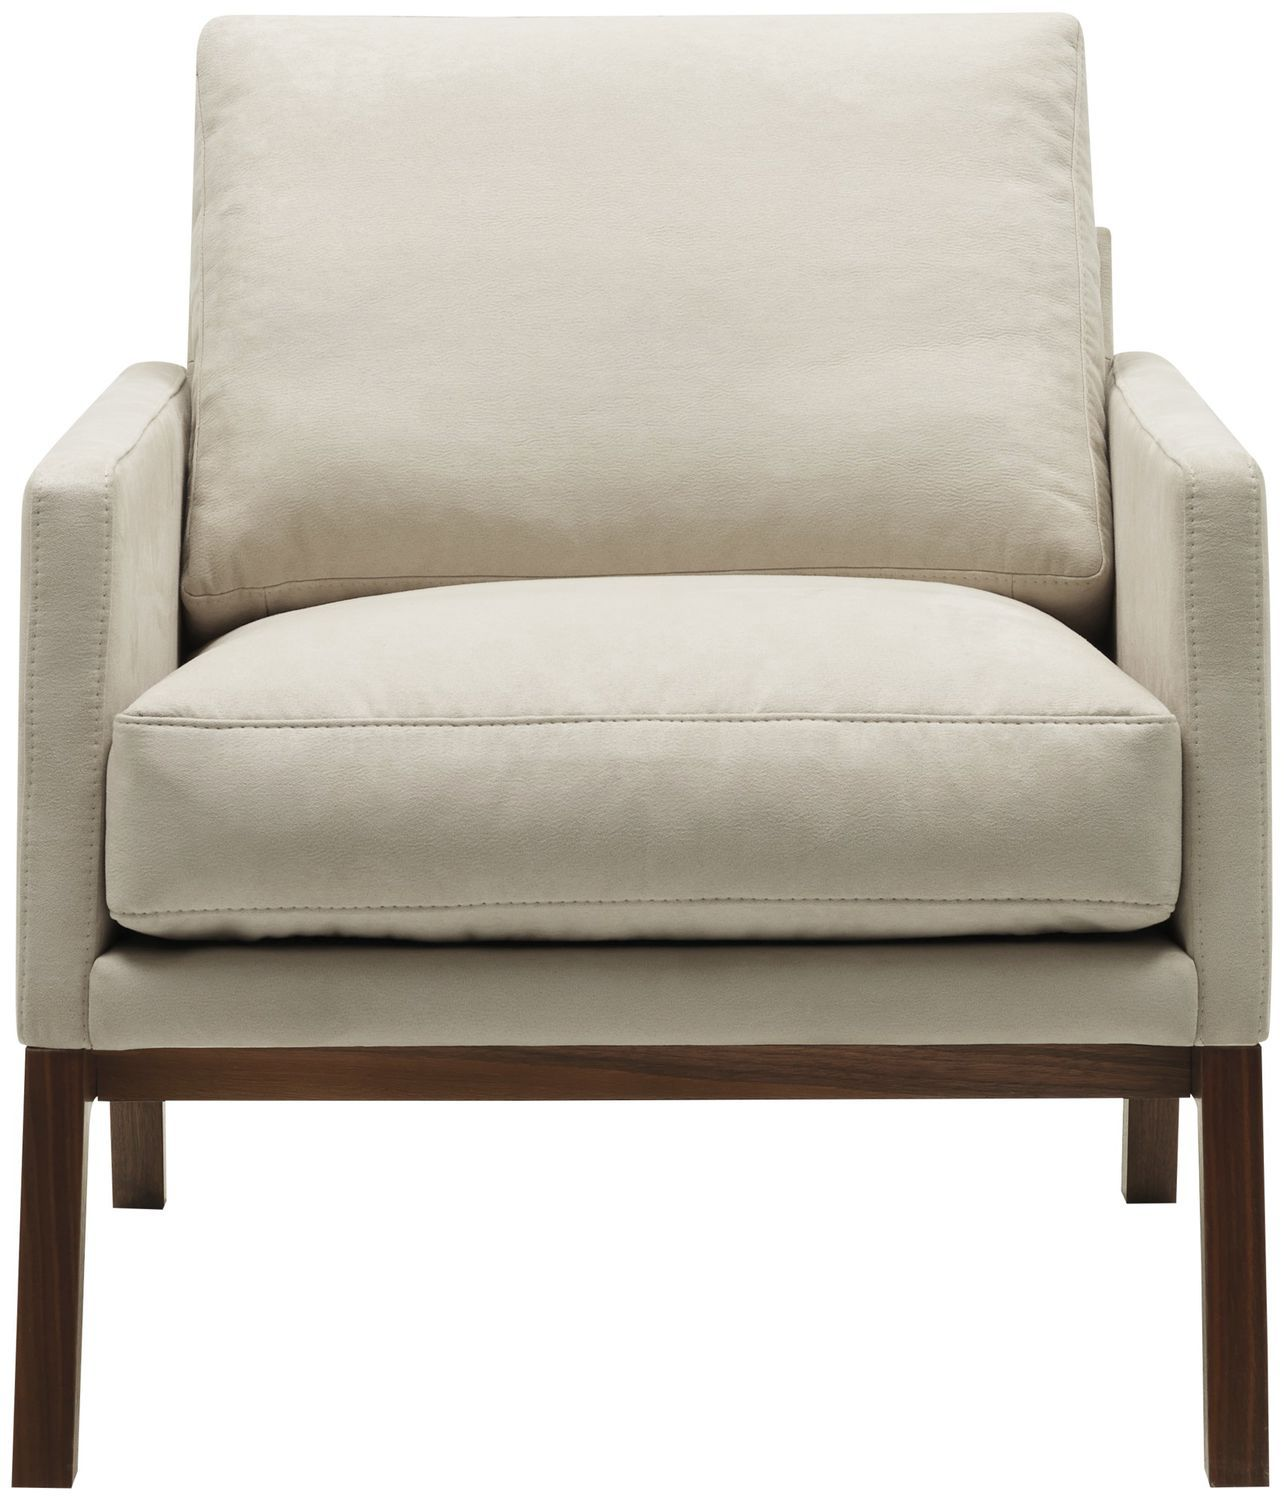 Charmant Contemporary Armchair / Wooden / Fabric / Leather. MONTE BoConcept